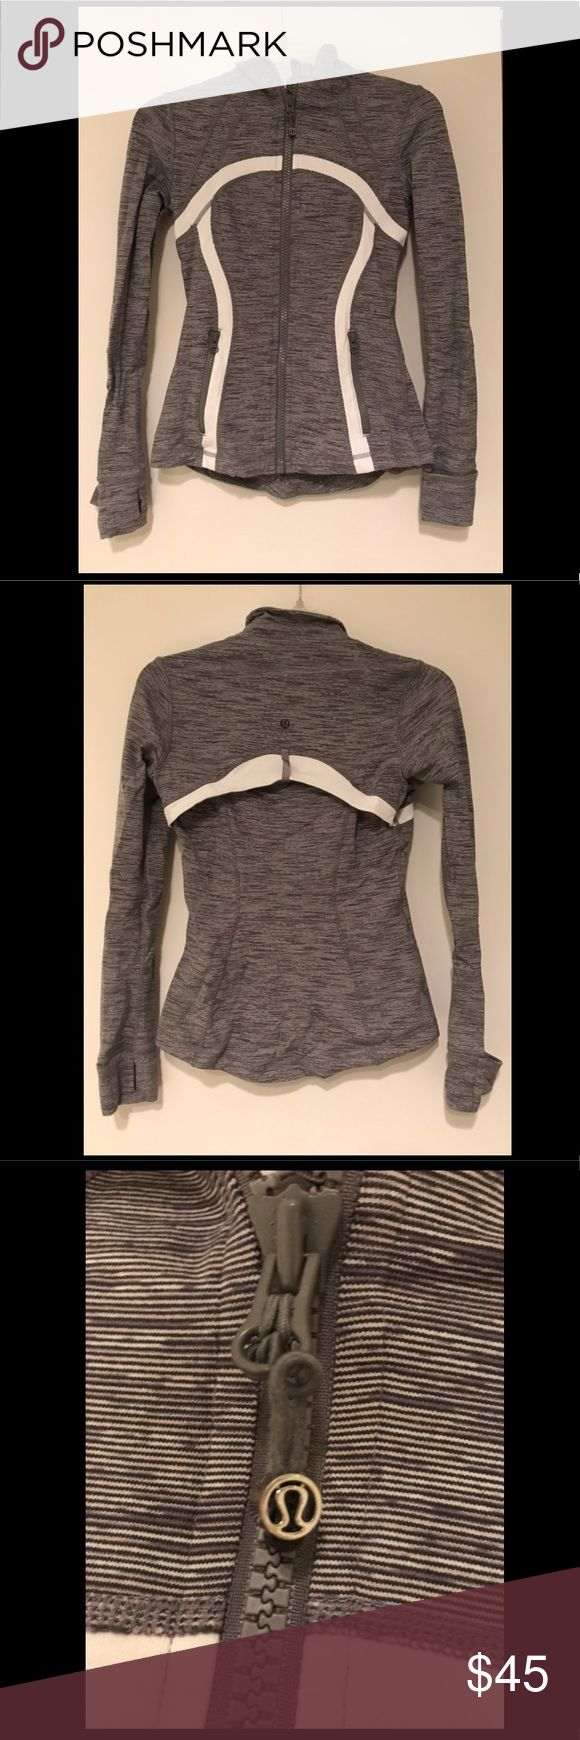 Lululemon Define Jacket Grey and white Lululemon Define Jacket. Zipper side pockets and thumb holes. Size 4 lululemon athletica Tops Sweatshirts & Hoodies